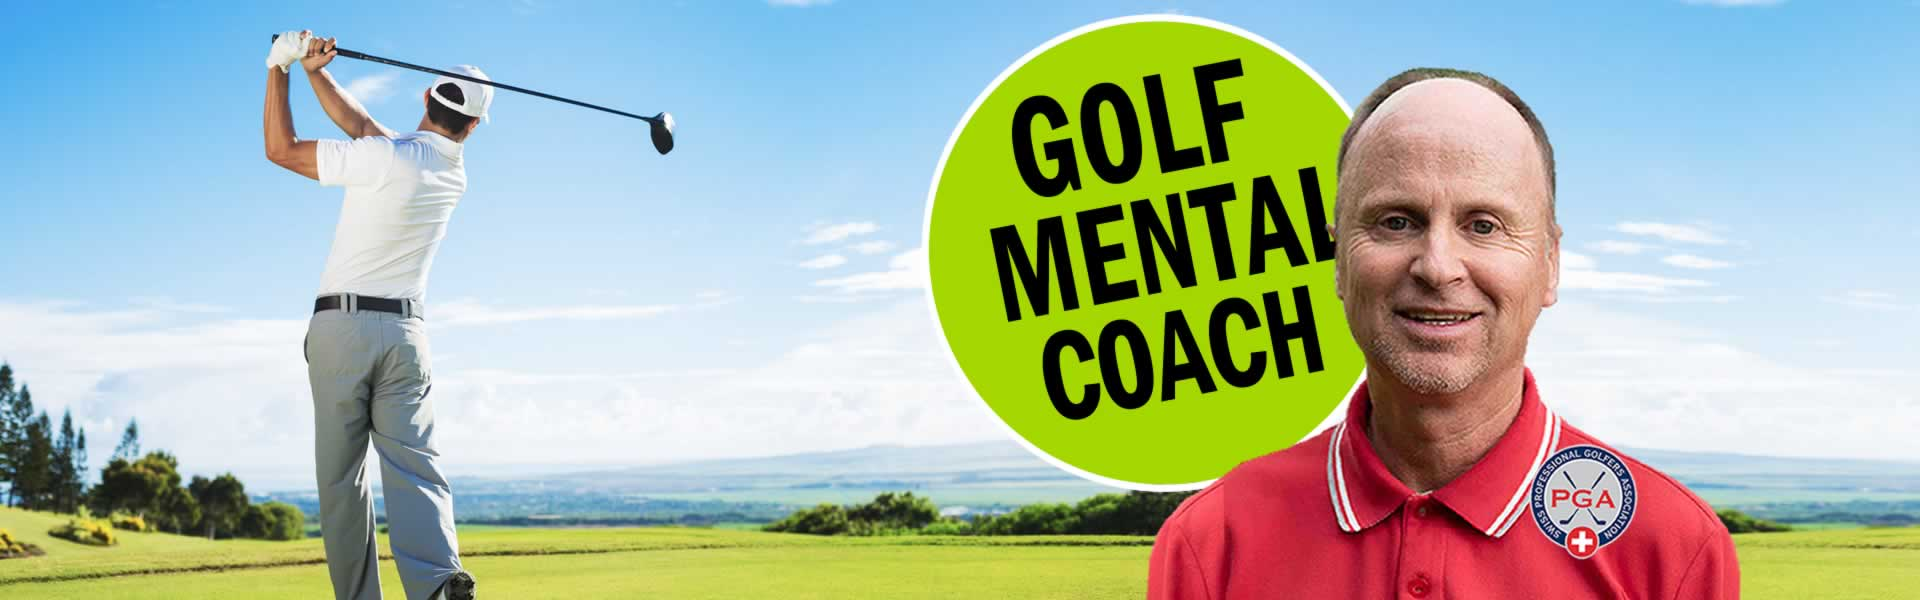 Golf-Mental-Coach-Zuerich-Golf-Pro-Coaching-Thierry-Rombaldi-02